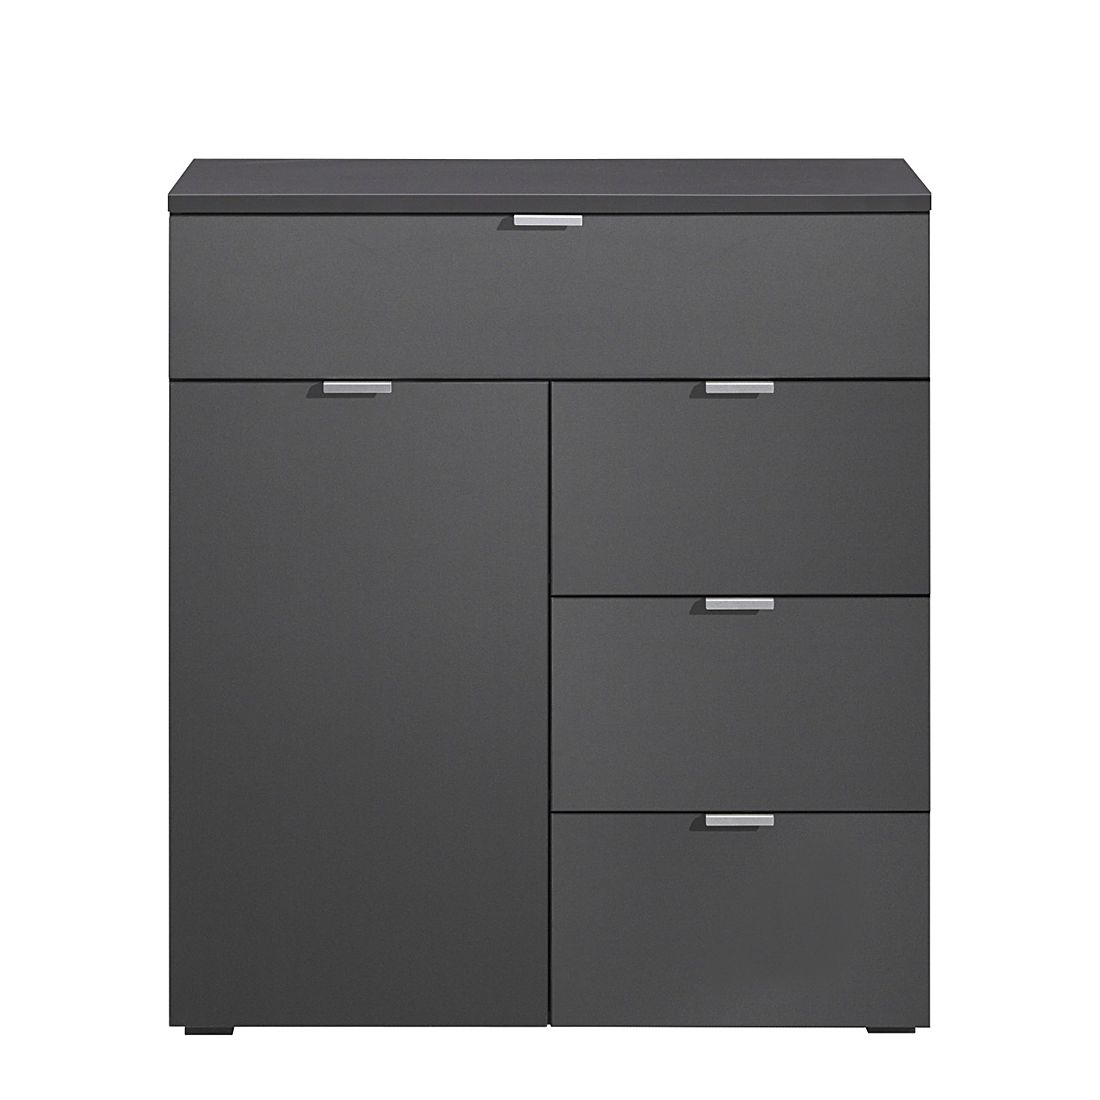 malmenouml ii grijs commode kidsmill in de aanbieding kopen. Black Bedroom Furniture Sets. Home Design Ideas